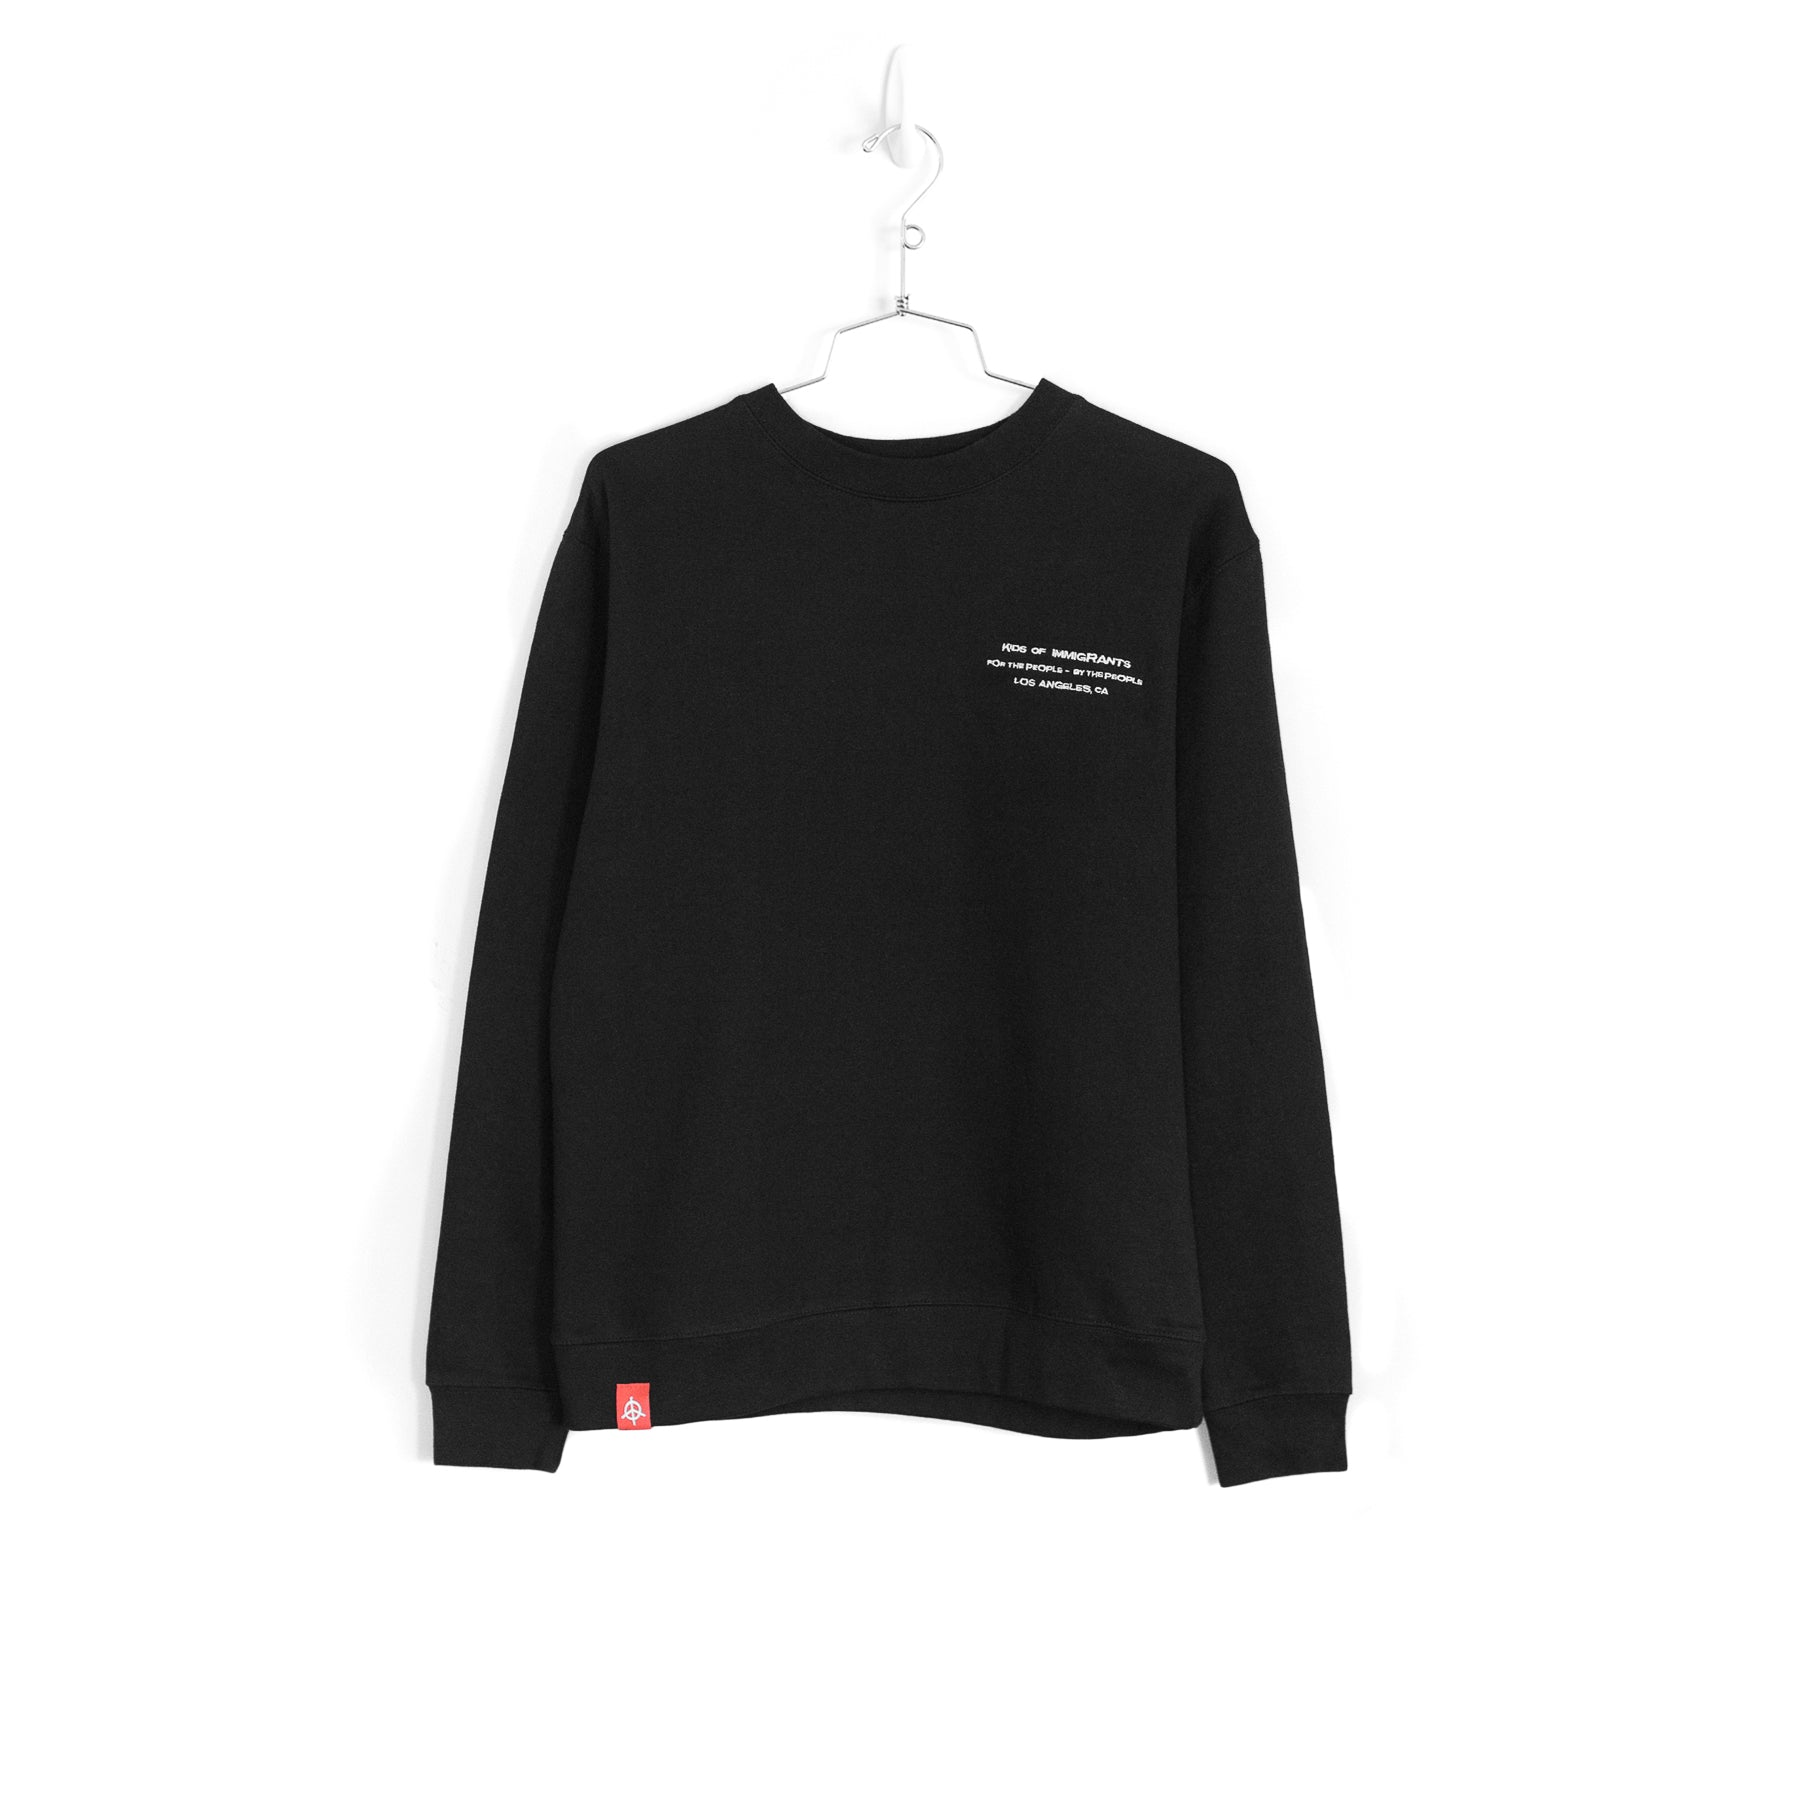 EYE OF THE TIGER BLAST SWEATER - BLACK (SILVER EMBROIDERY)